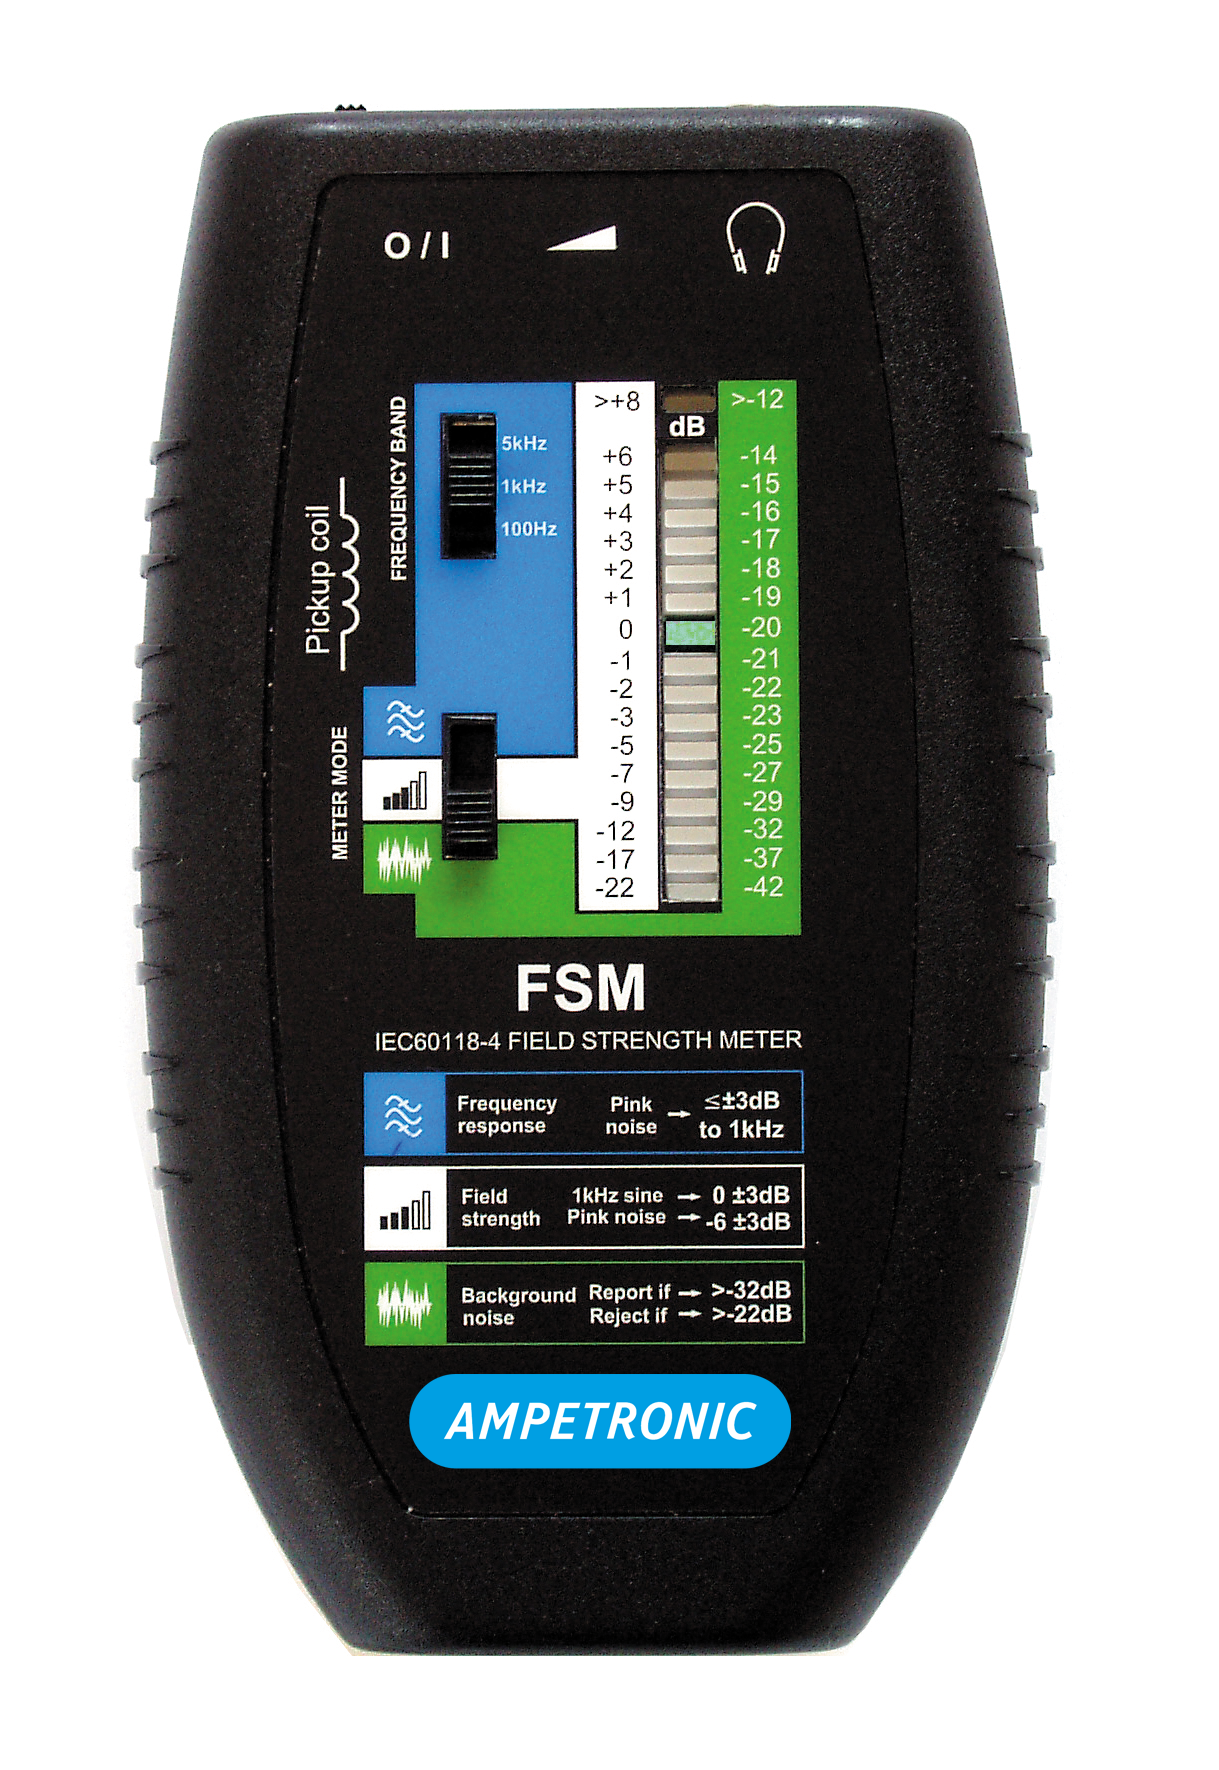 FSM Field strength meter